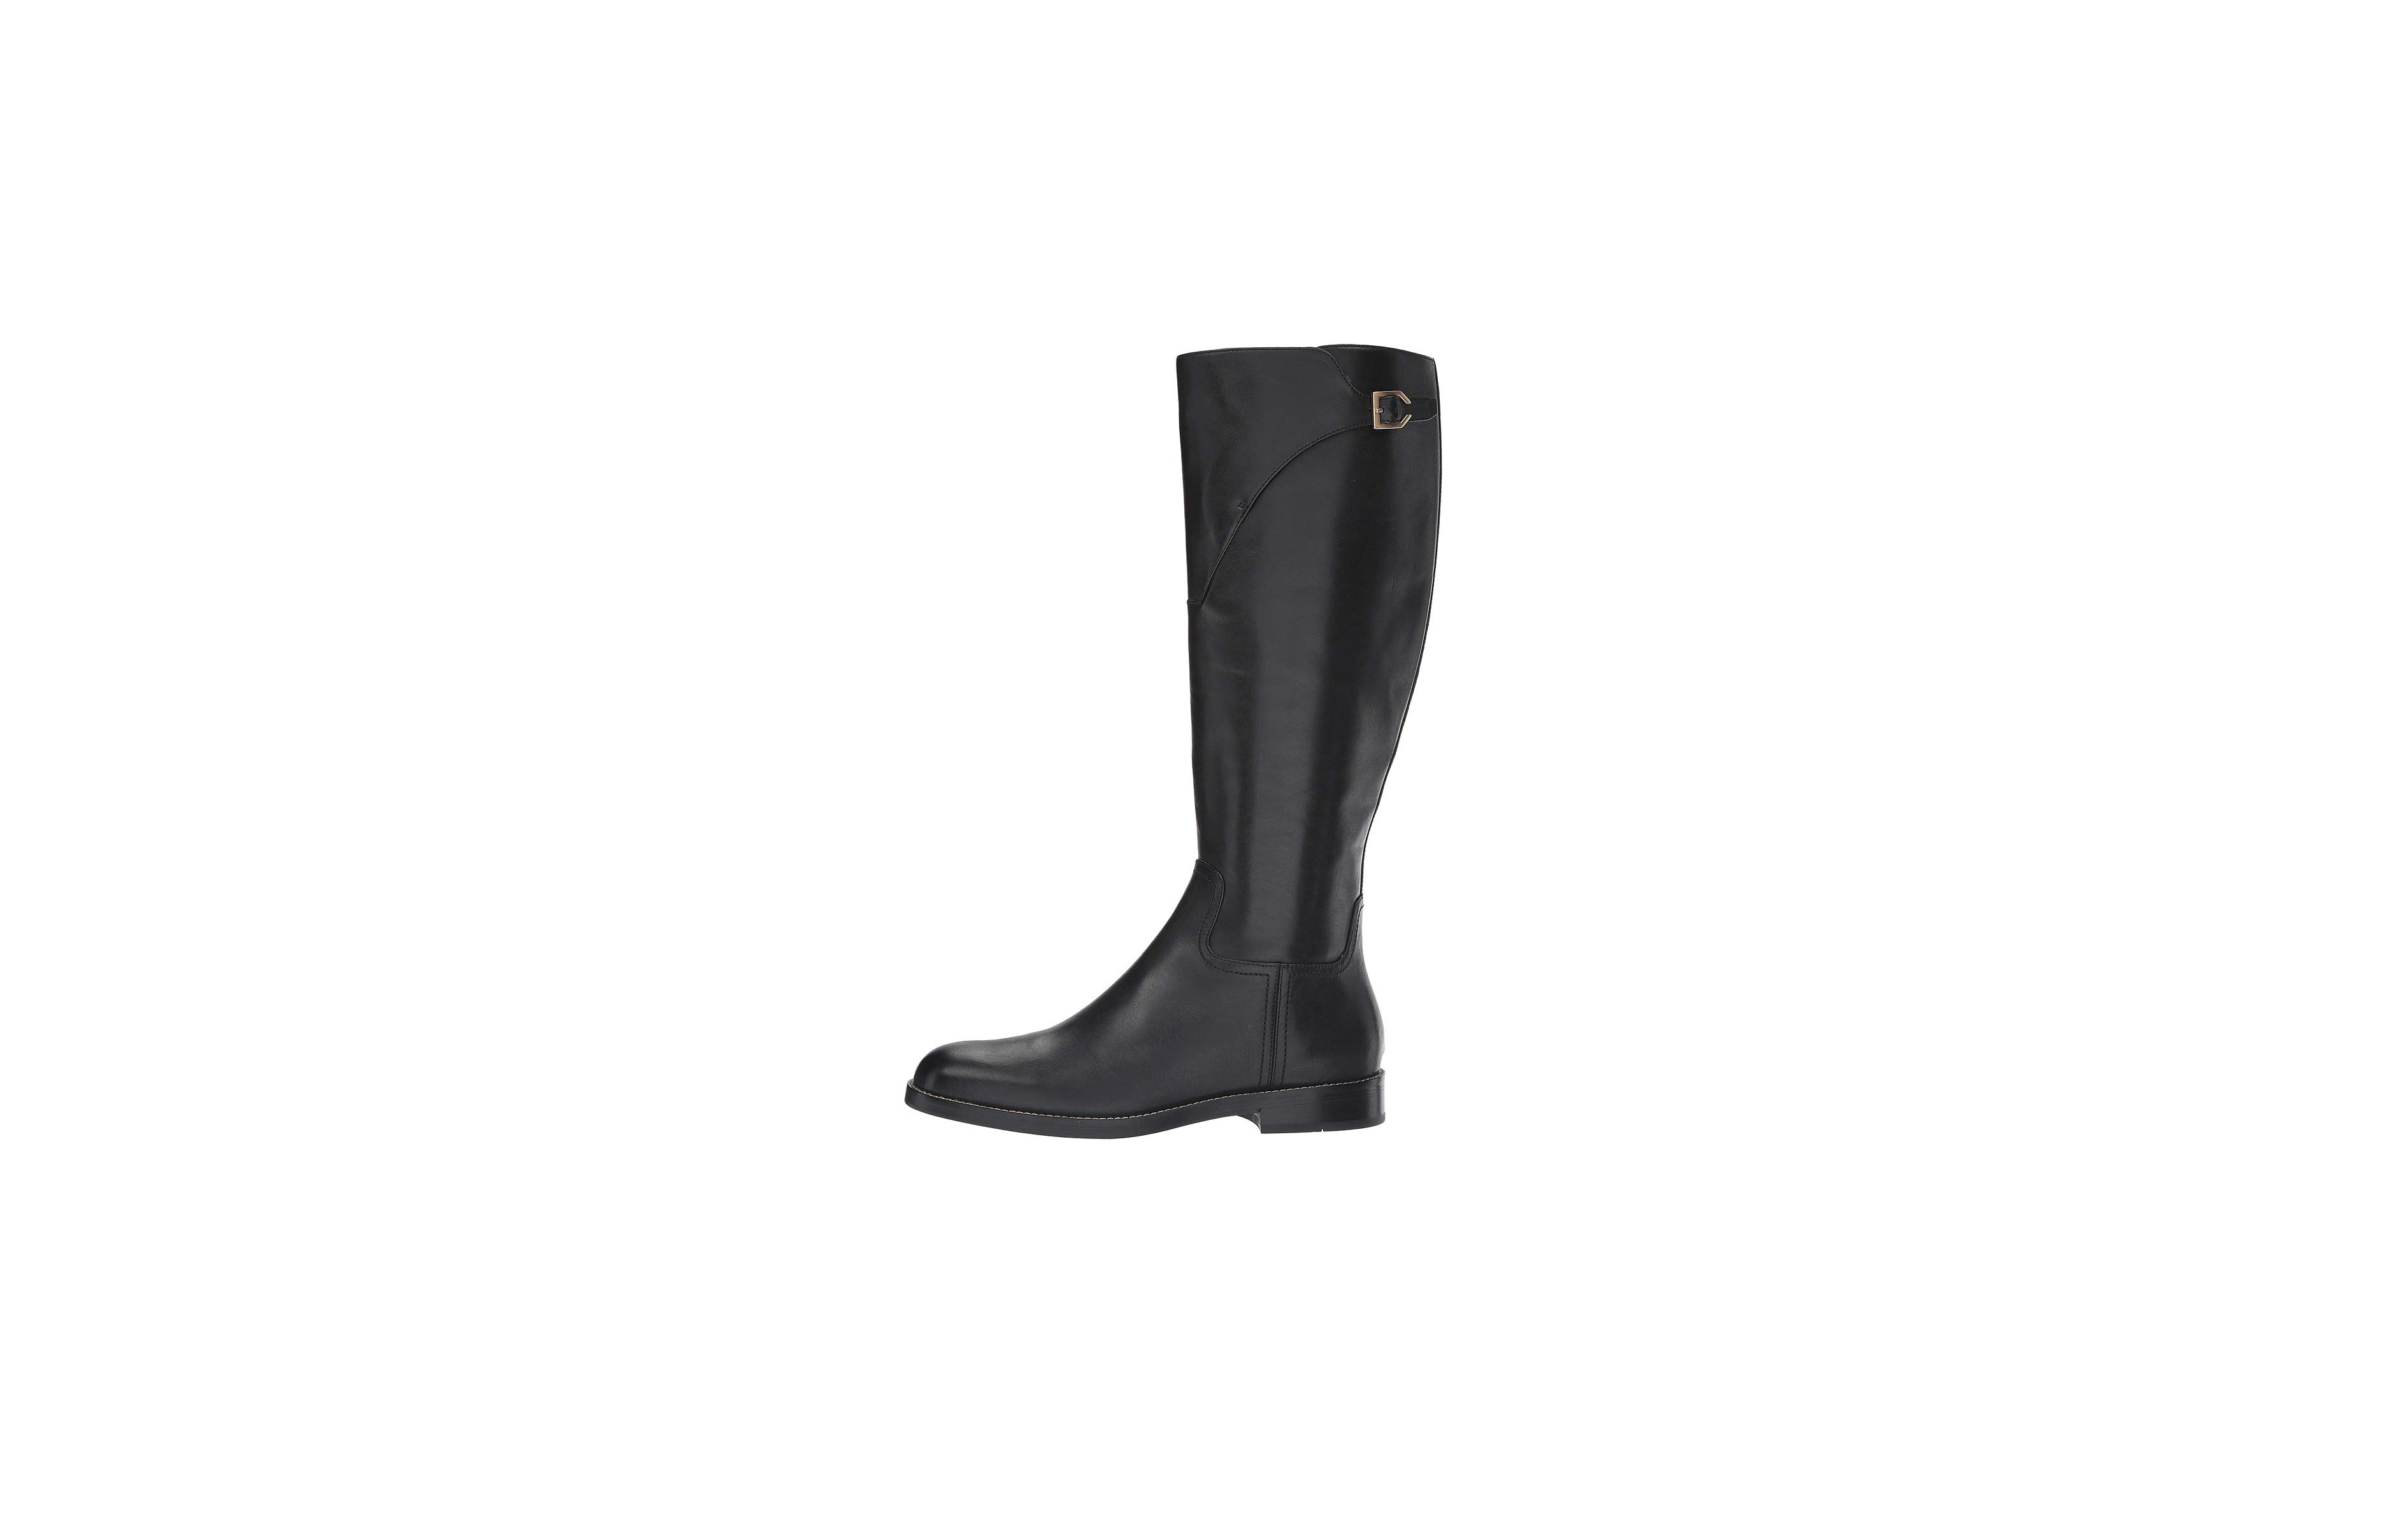 Winter-Proof Cole Haan Tall Riding